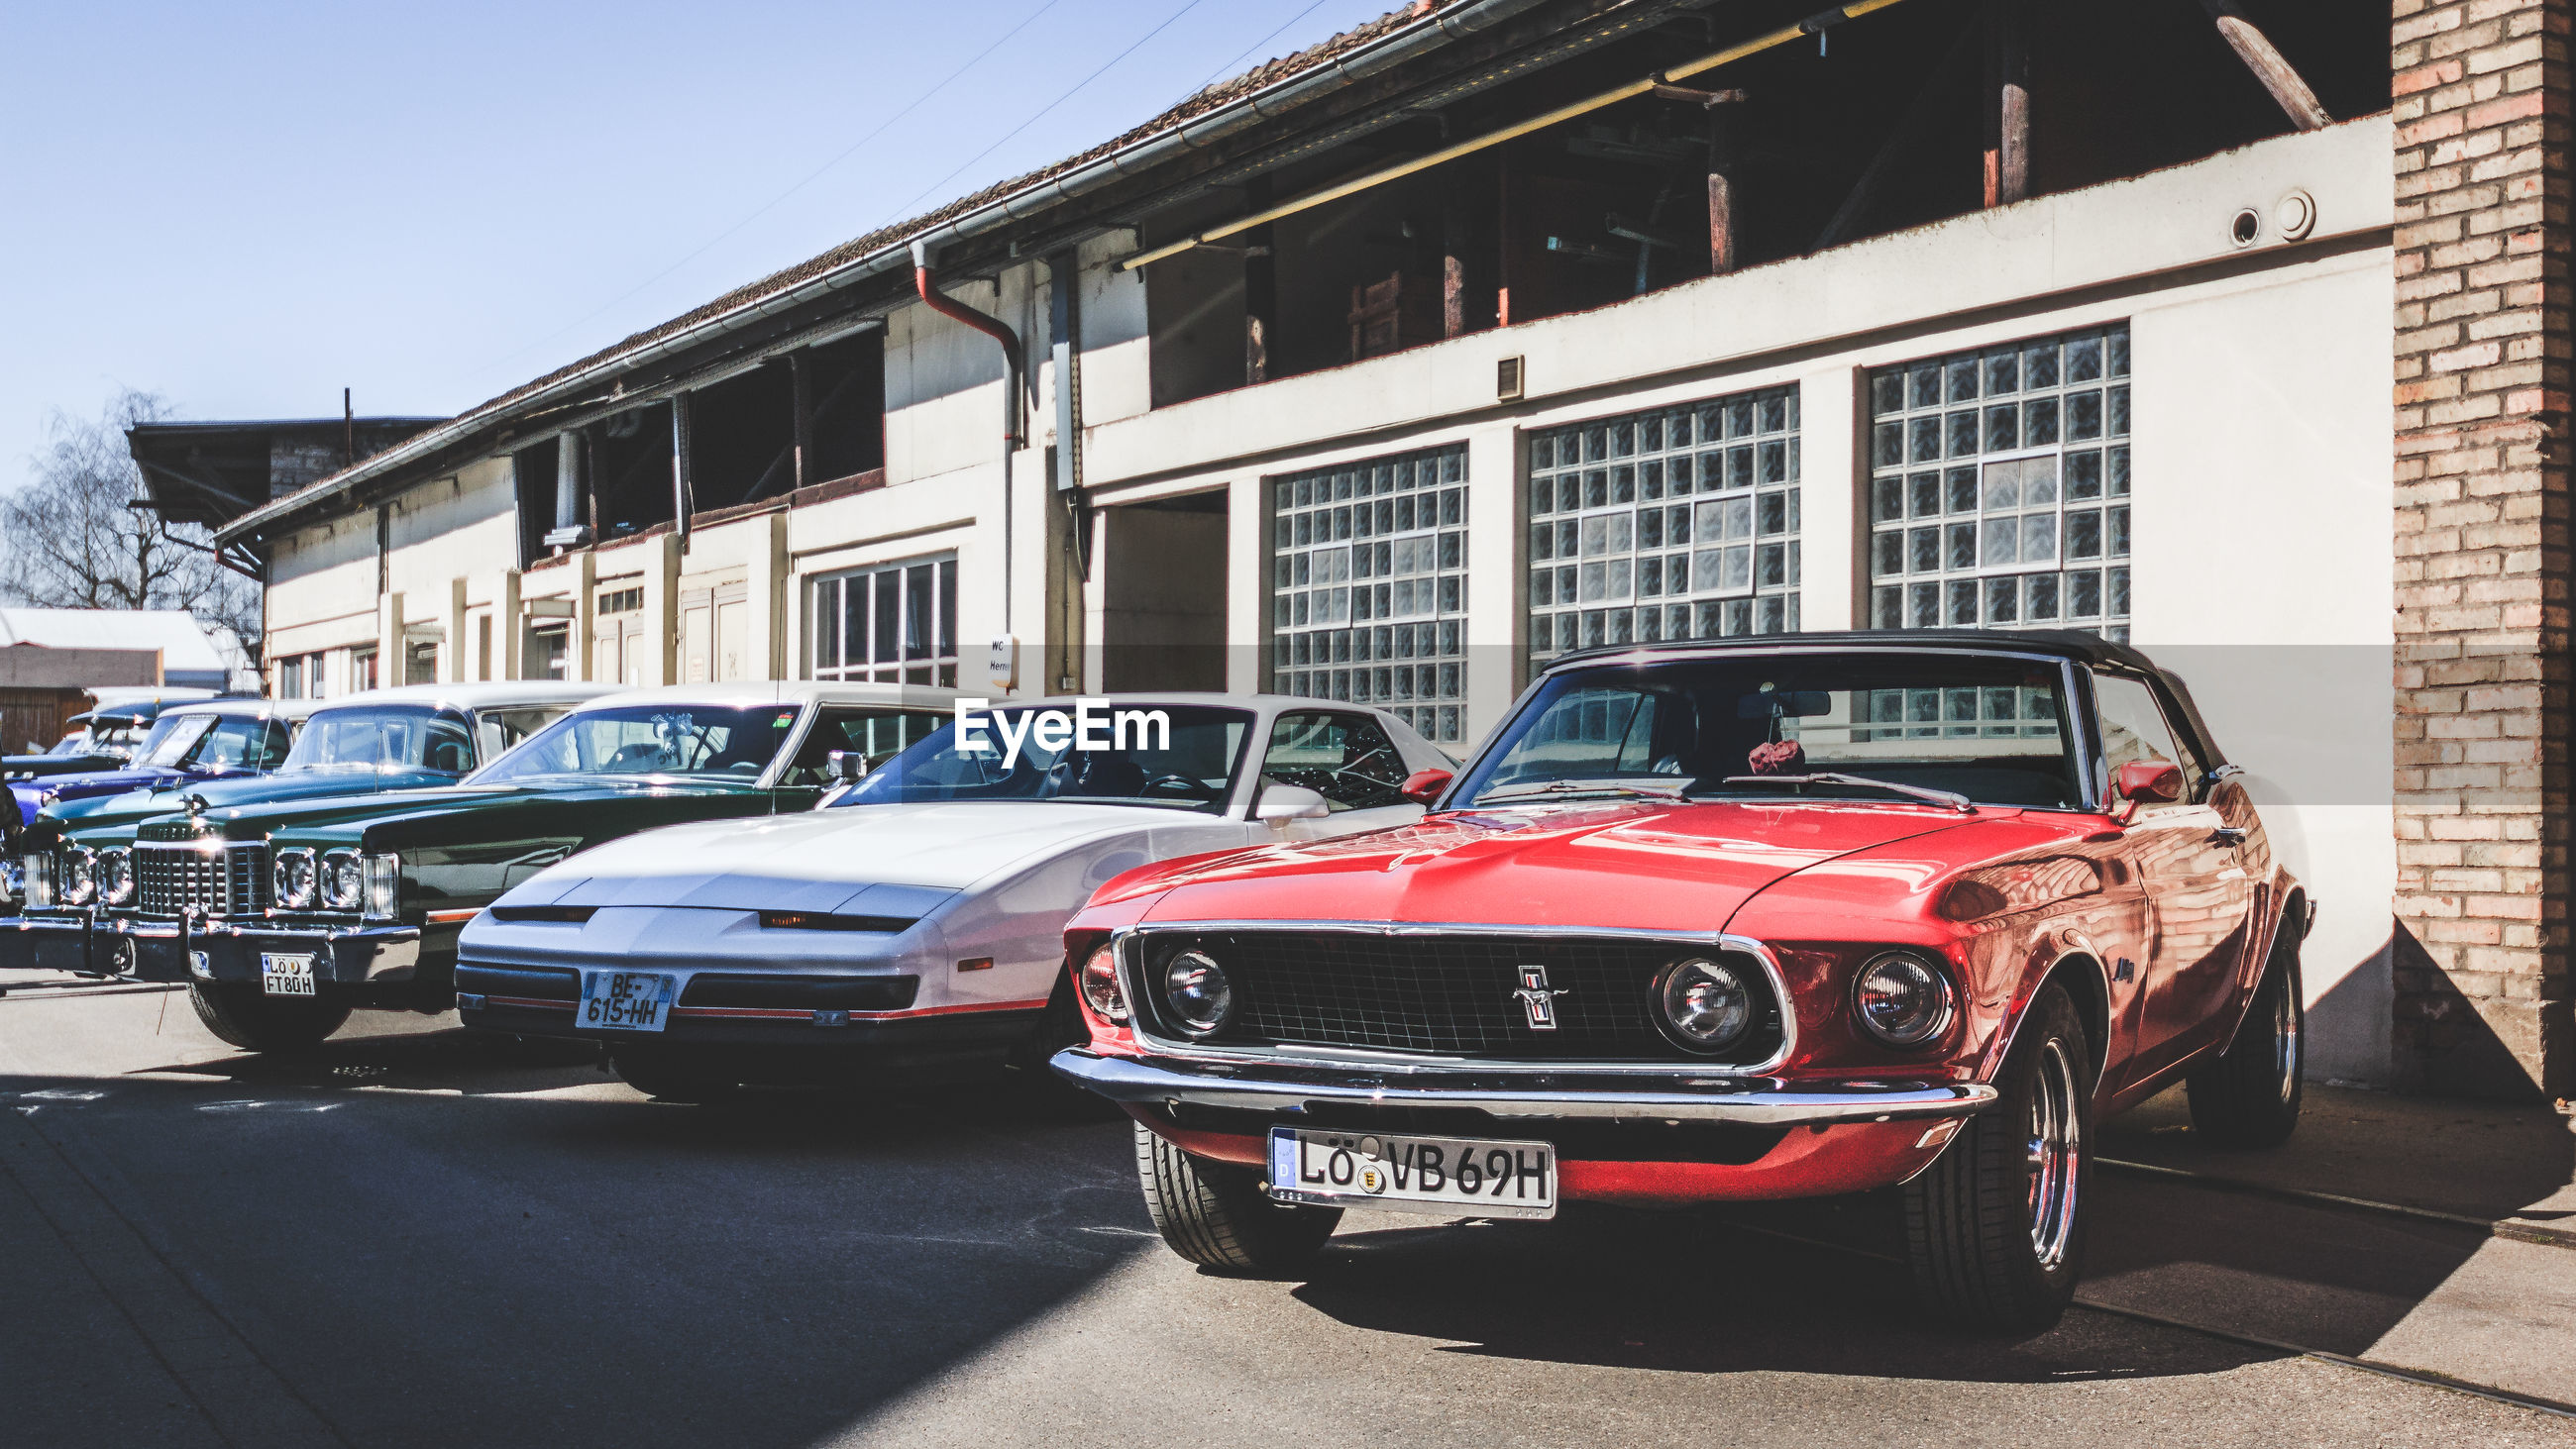 mode of transportation, car, motor vehicle, transportation, land vehicle, architecture, city, building exterior, built structure, street, stationary, day, sunlight, building, retro styled, vintage car, no people, road, in a row, outdoors, luxury